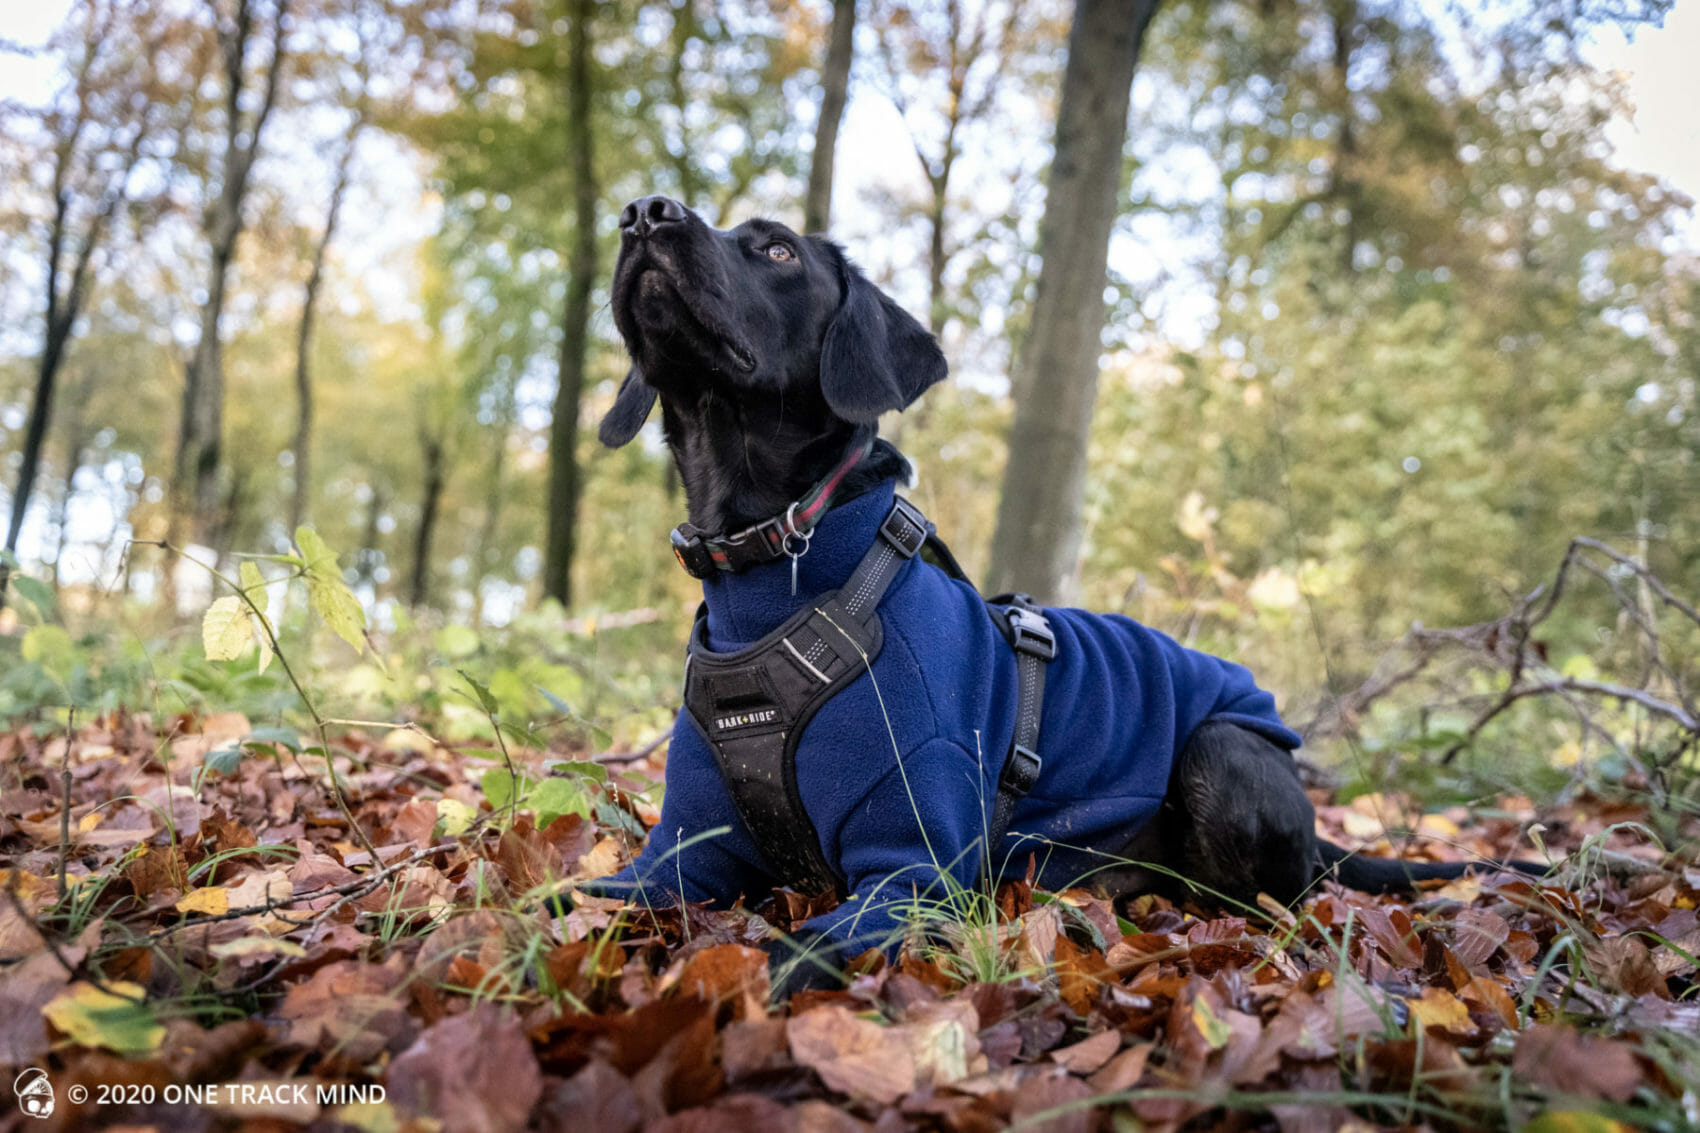 Bark + Ride Lewis Adventure Harness Review